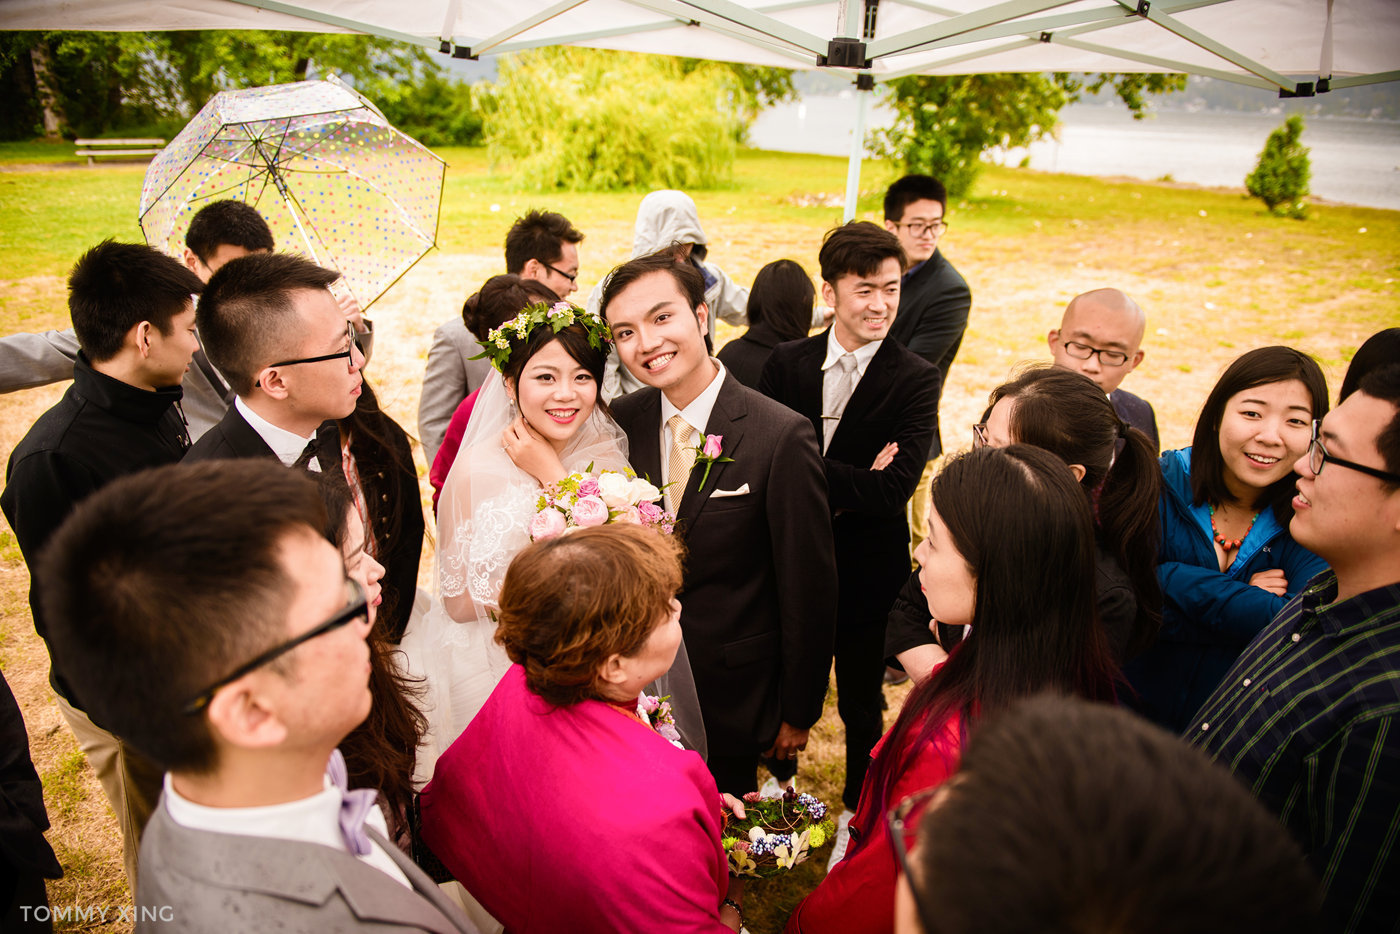 Seattle Wedding and pre wedding Los Angeles Tommy Xing Photography 西雅图洛杉矶旧金山婚礼婚纱照摄影师 107.jpg